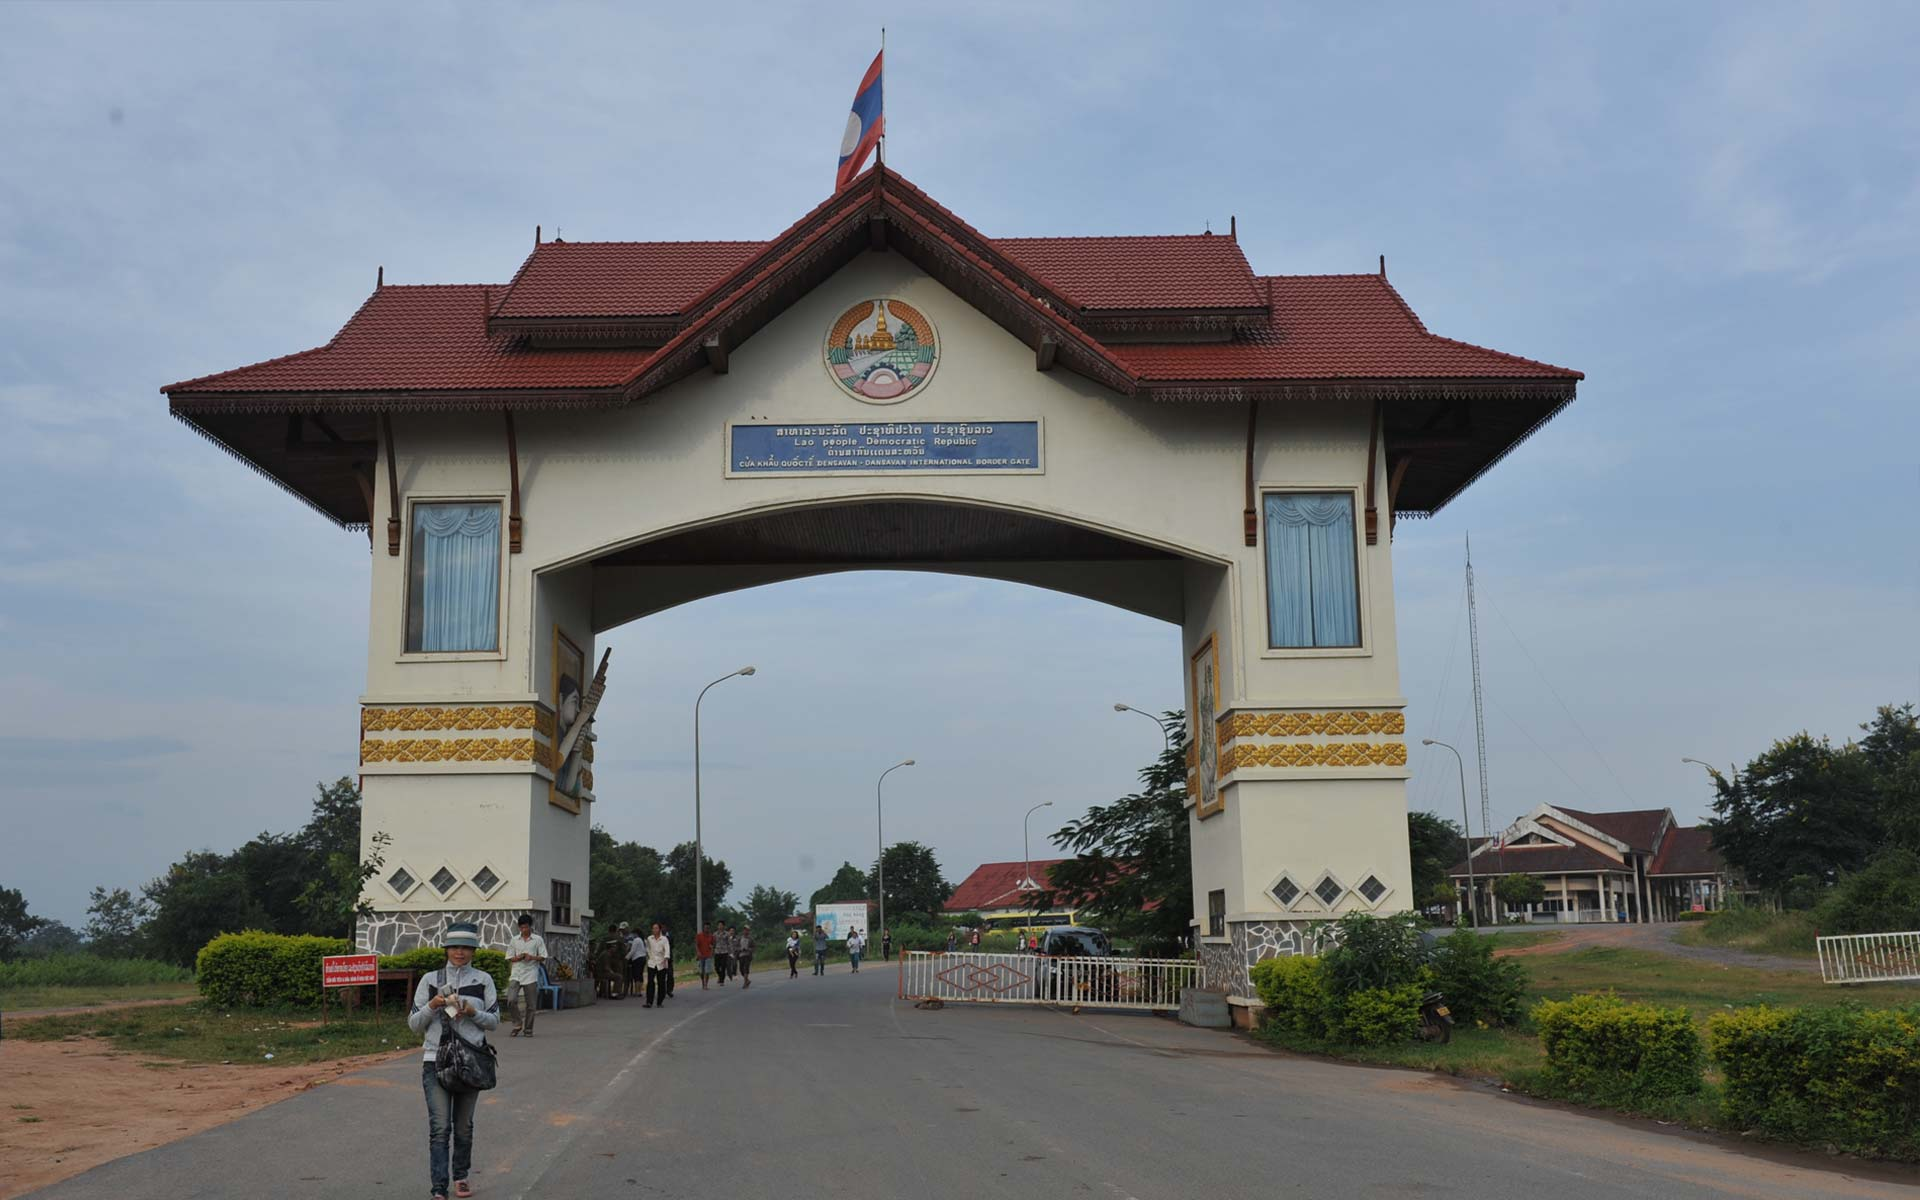 Get to Laos by overland through border crossings